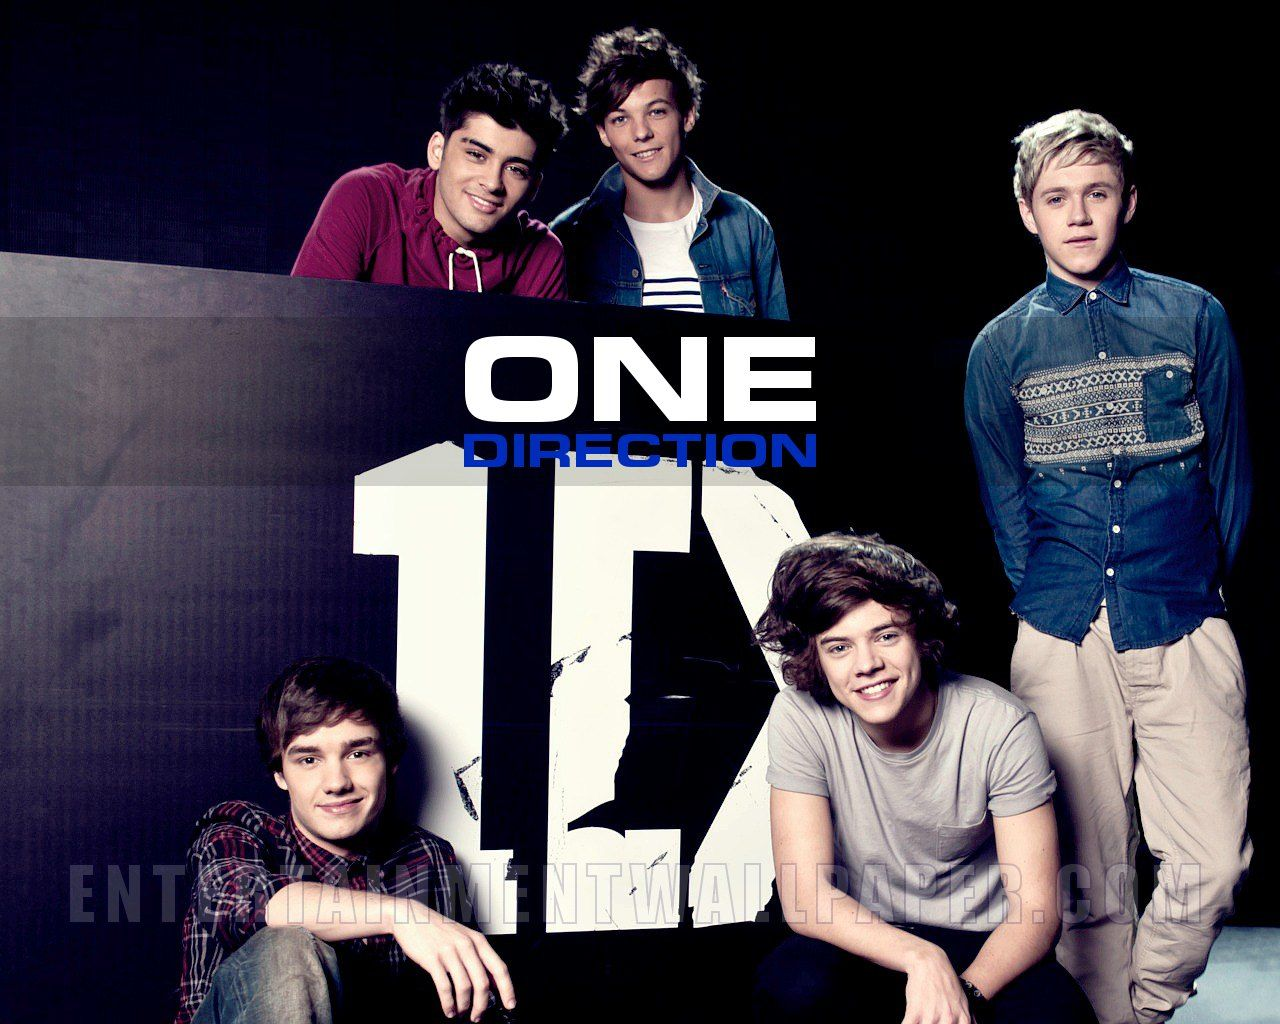 one direction free hd wallpapers 2014 Desktop